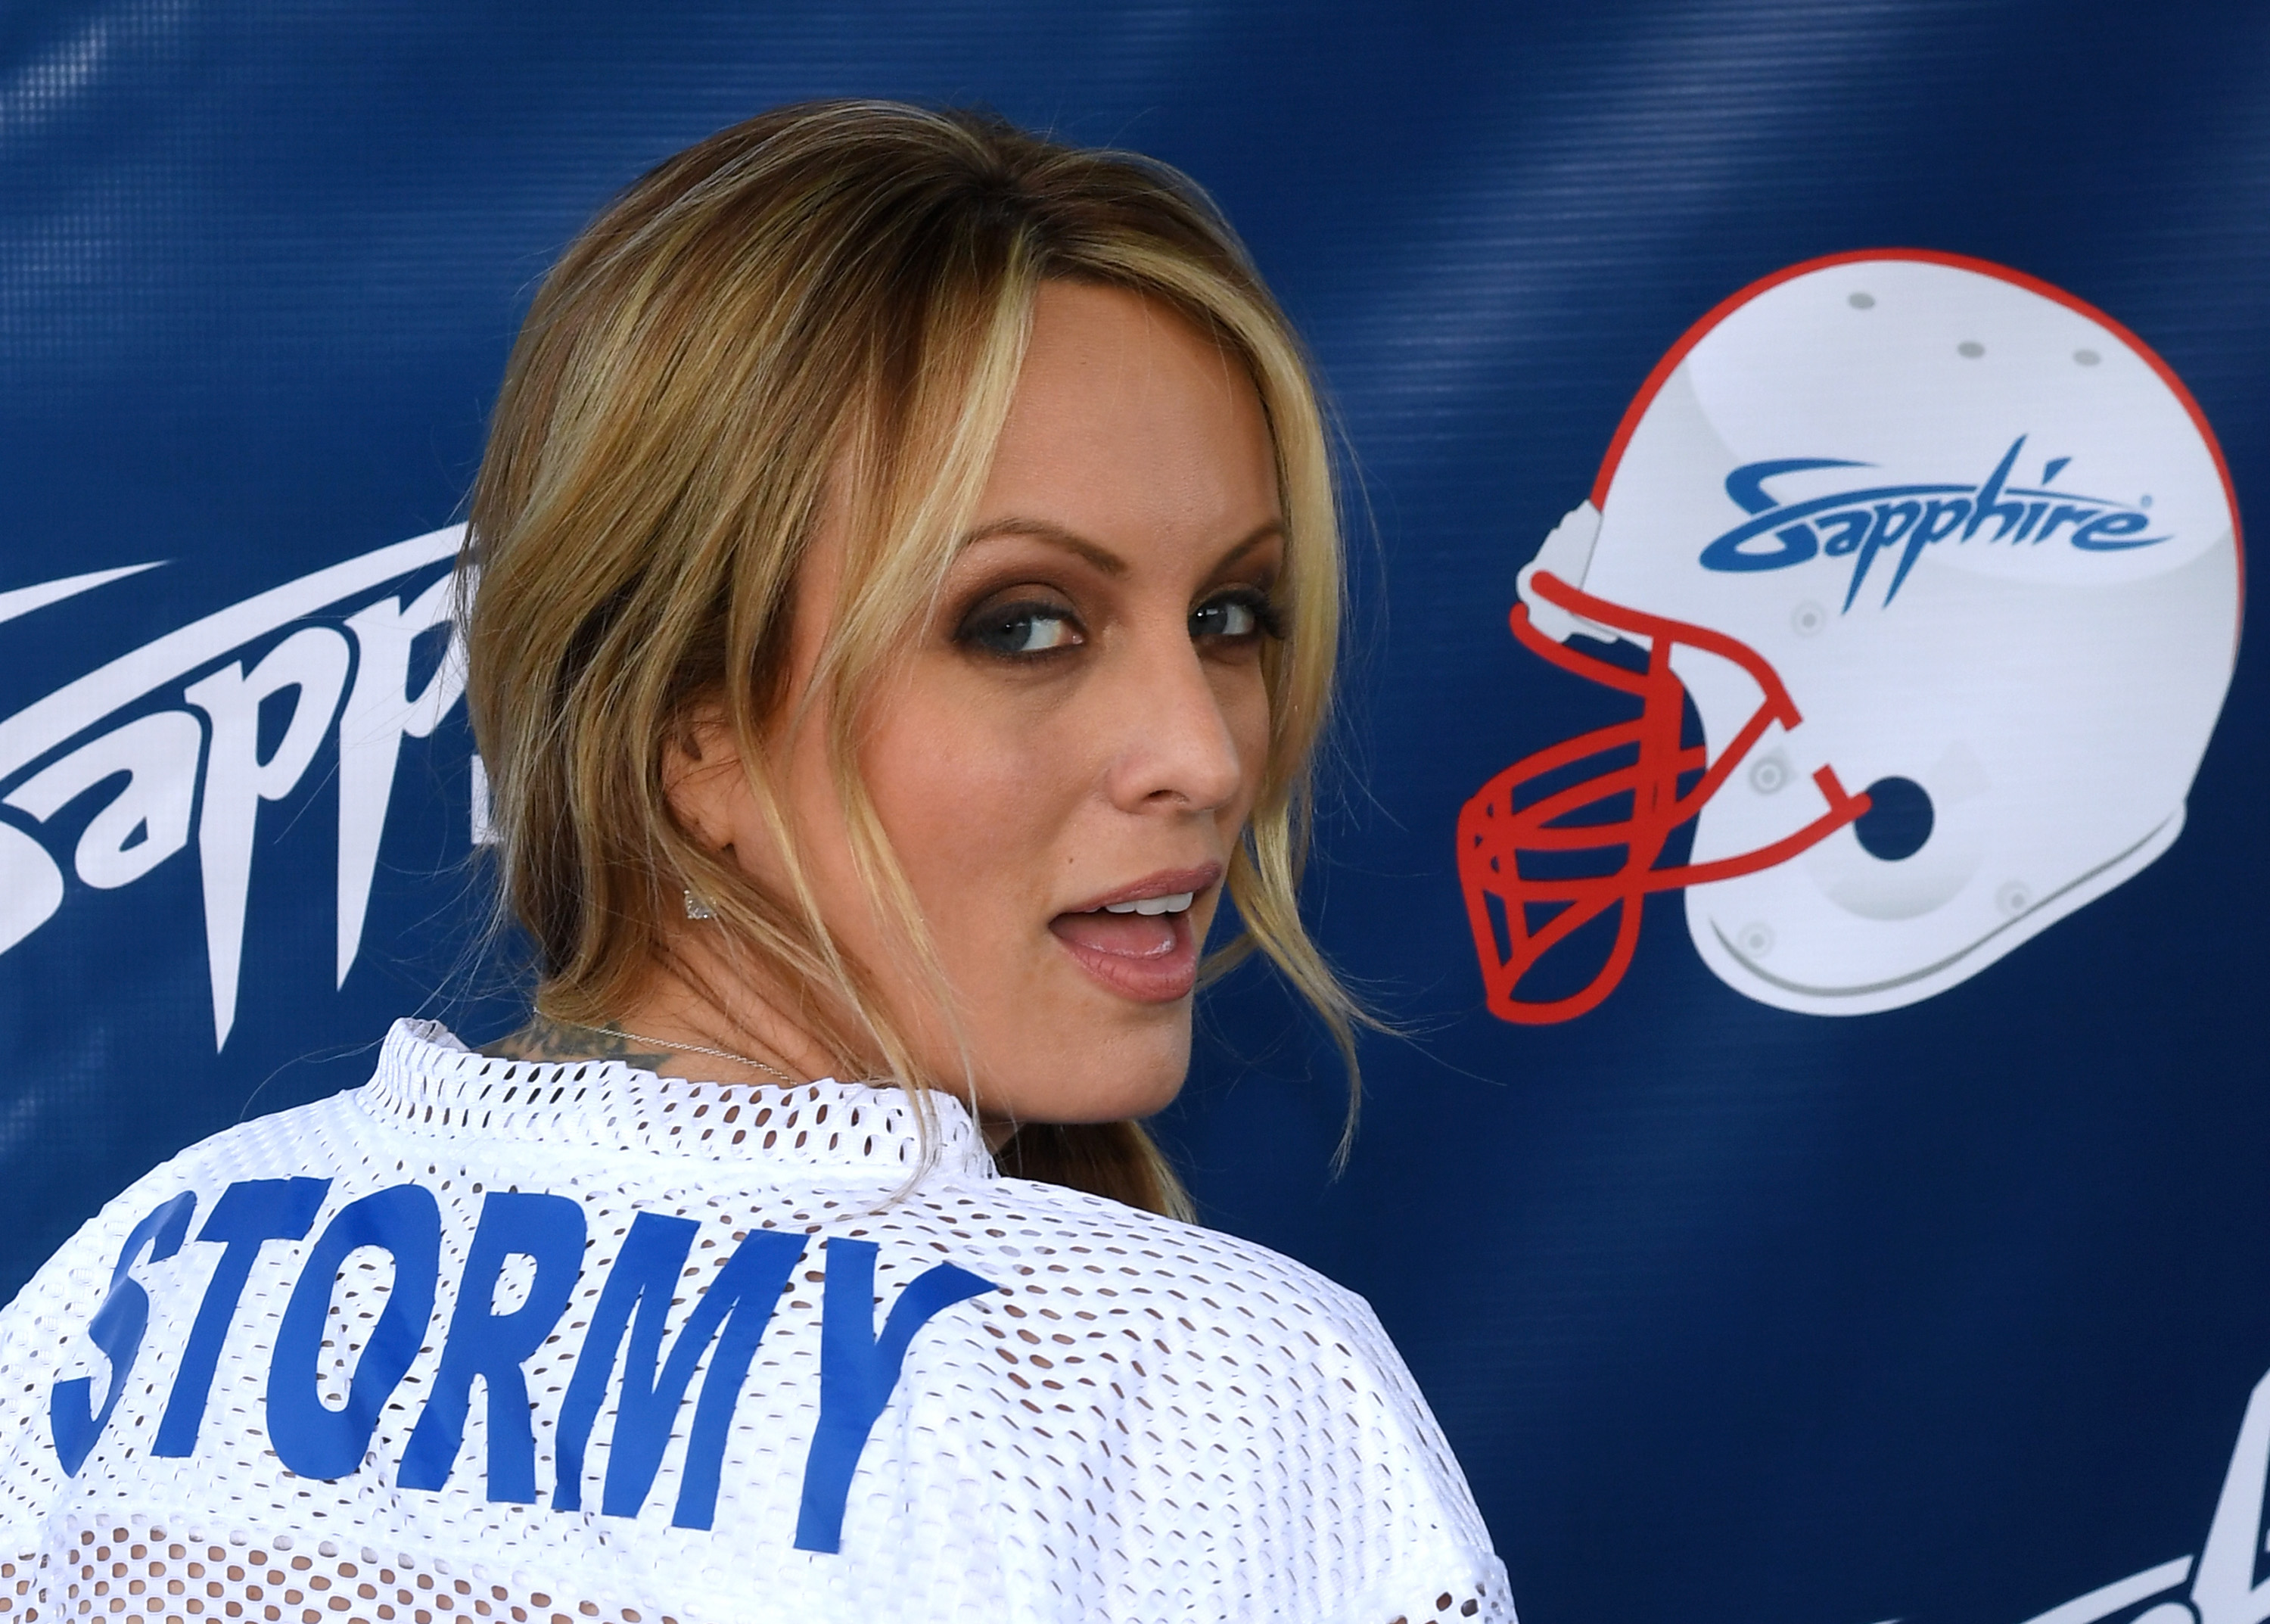 Stormy Daniels Hosts Super Bowl Party At Sapphire Las Vegas Gentlemen's Club